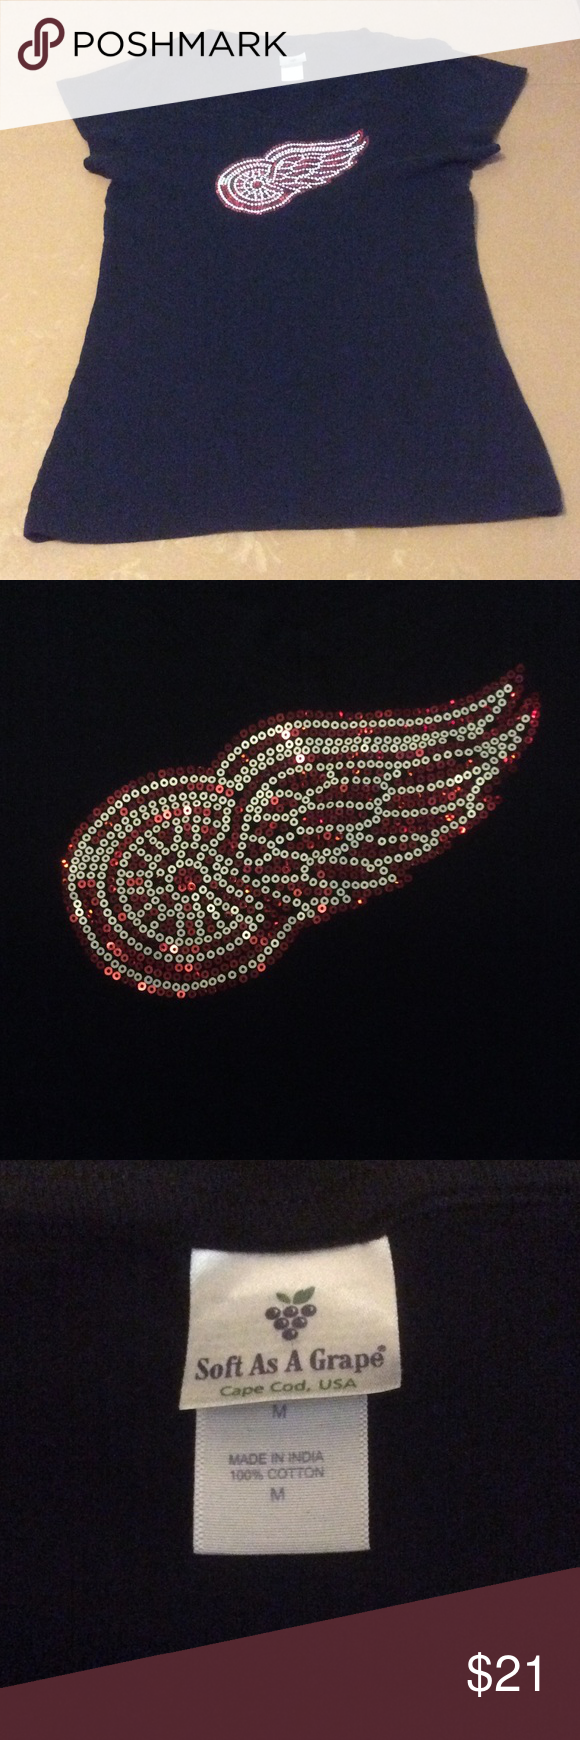 NHL Detroit Red Wings Hockey bling t-shirt EUC Great fan wear!  Very soft, black v-neck tee with the Detroit Red Wings logo blinged in sequins.  Looks lovely, ready for the game!  100% cotton  Size Medium Soft As A Grape Tops Tees - Short Sleeve